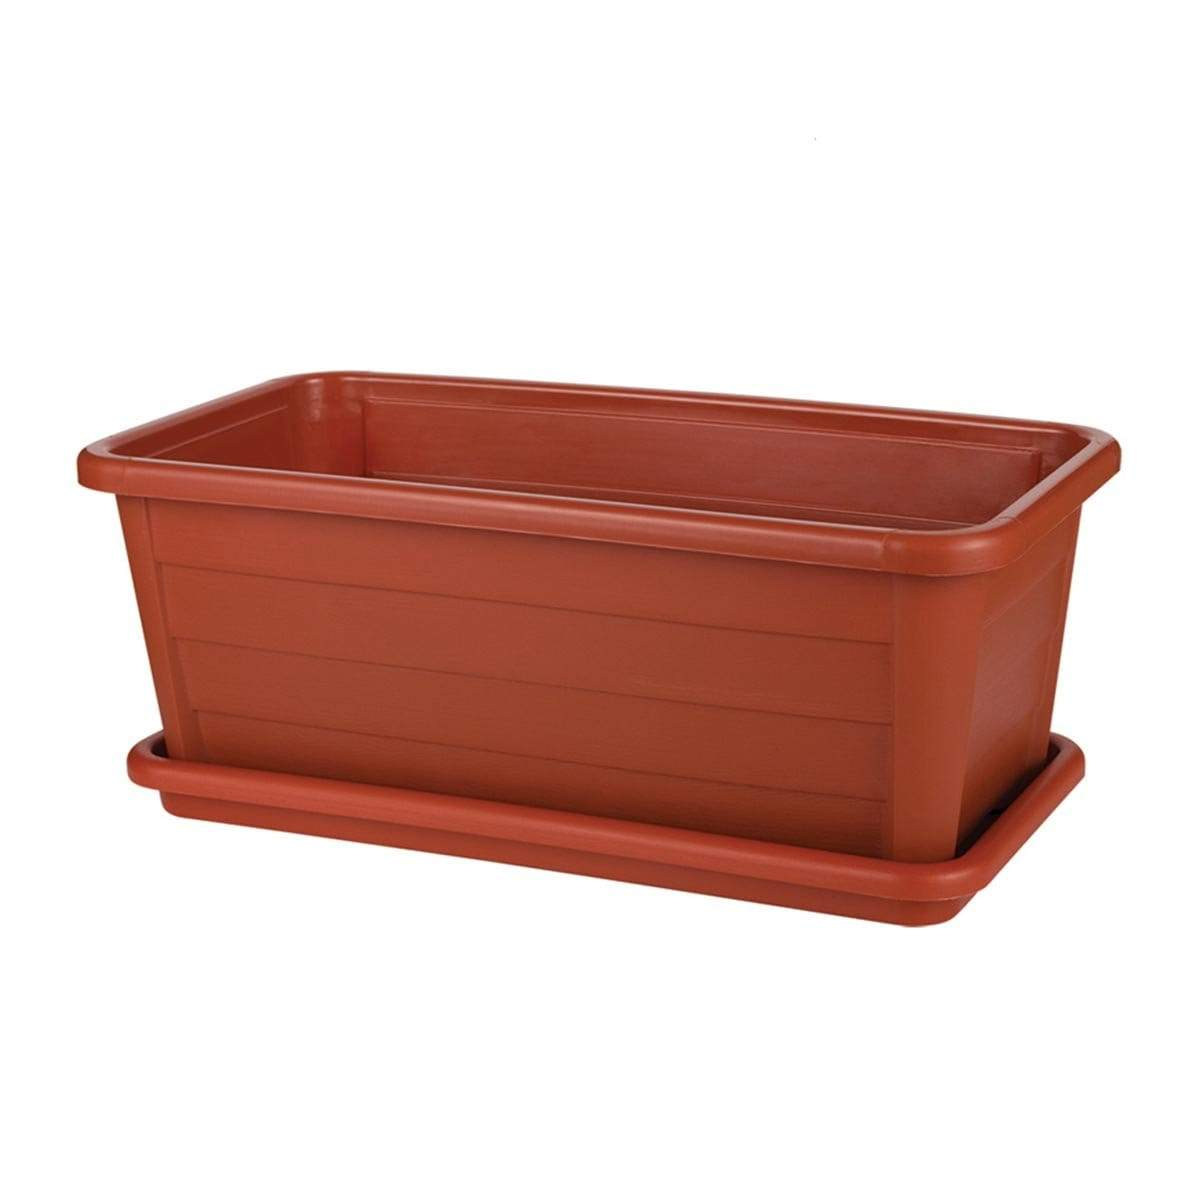 FBL2239 Felton Planter Box Flower Pot